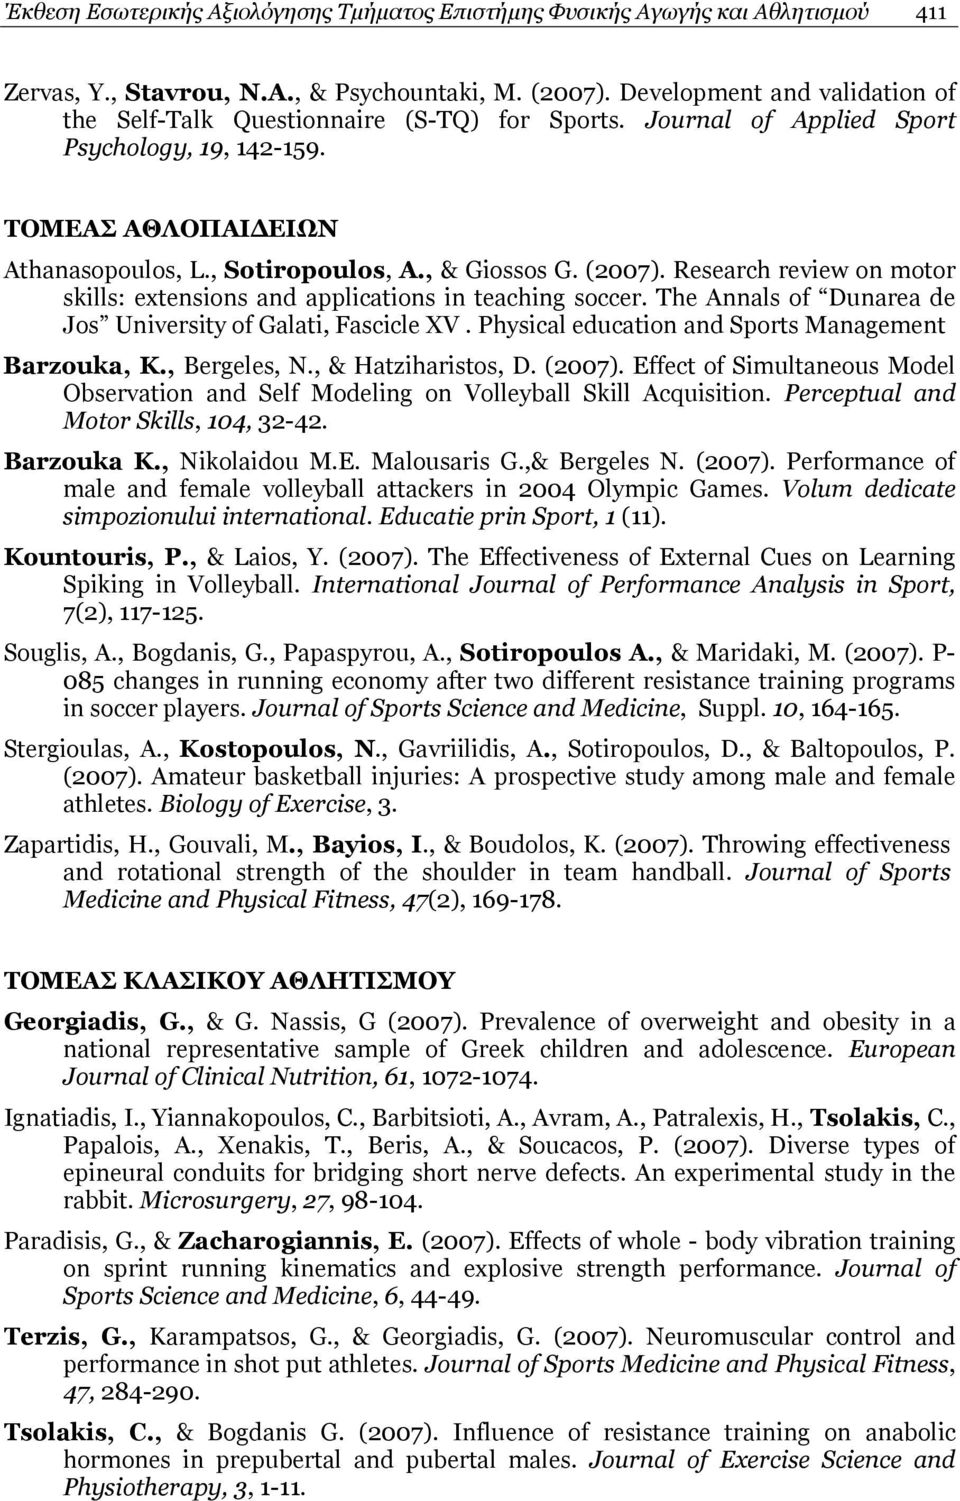 (2007). Research review on motor skills: extensions and applications in teaching soccer. The Annals of Dunarea de Jos University of Galati, Fascicle XV.